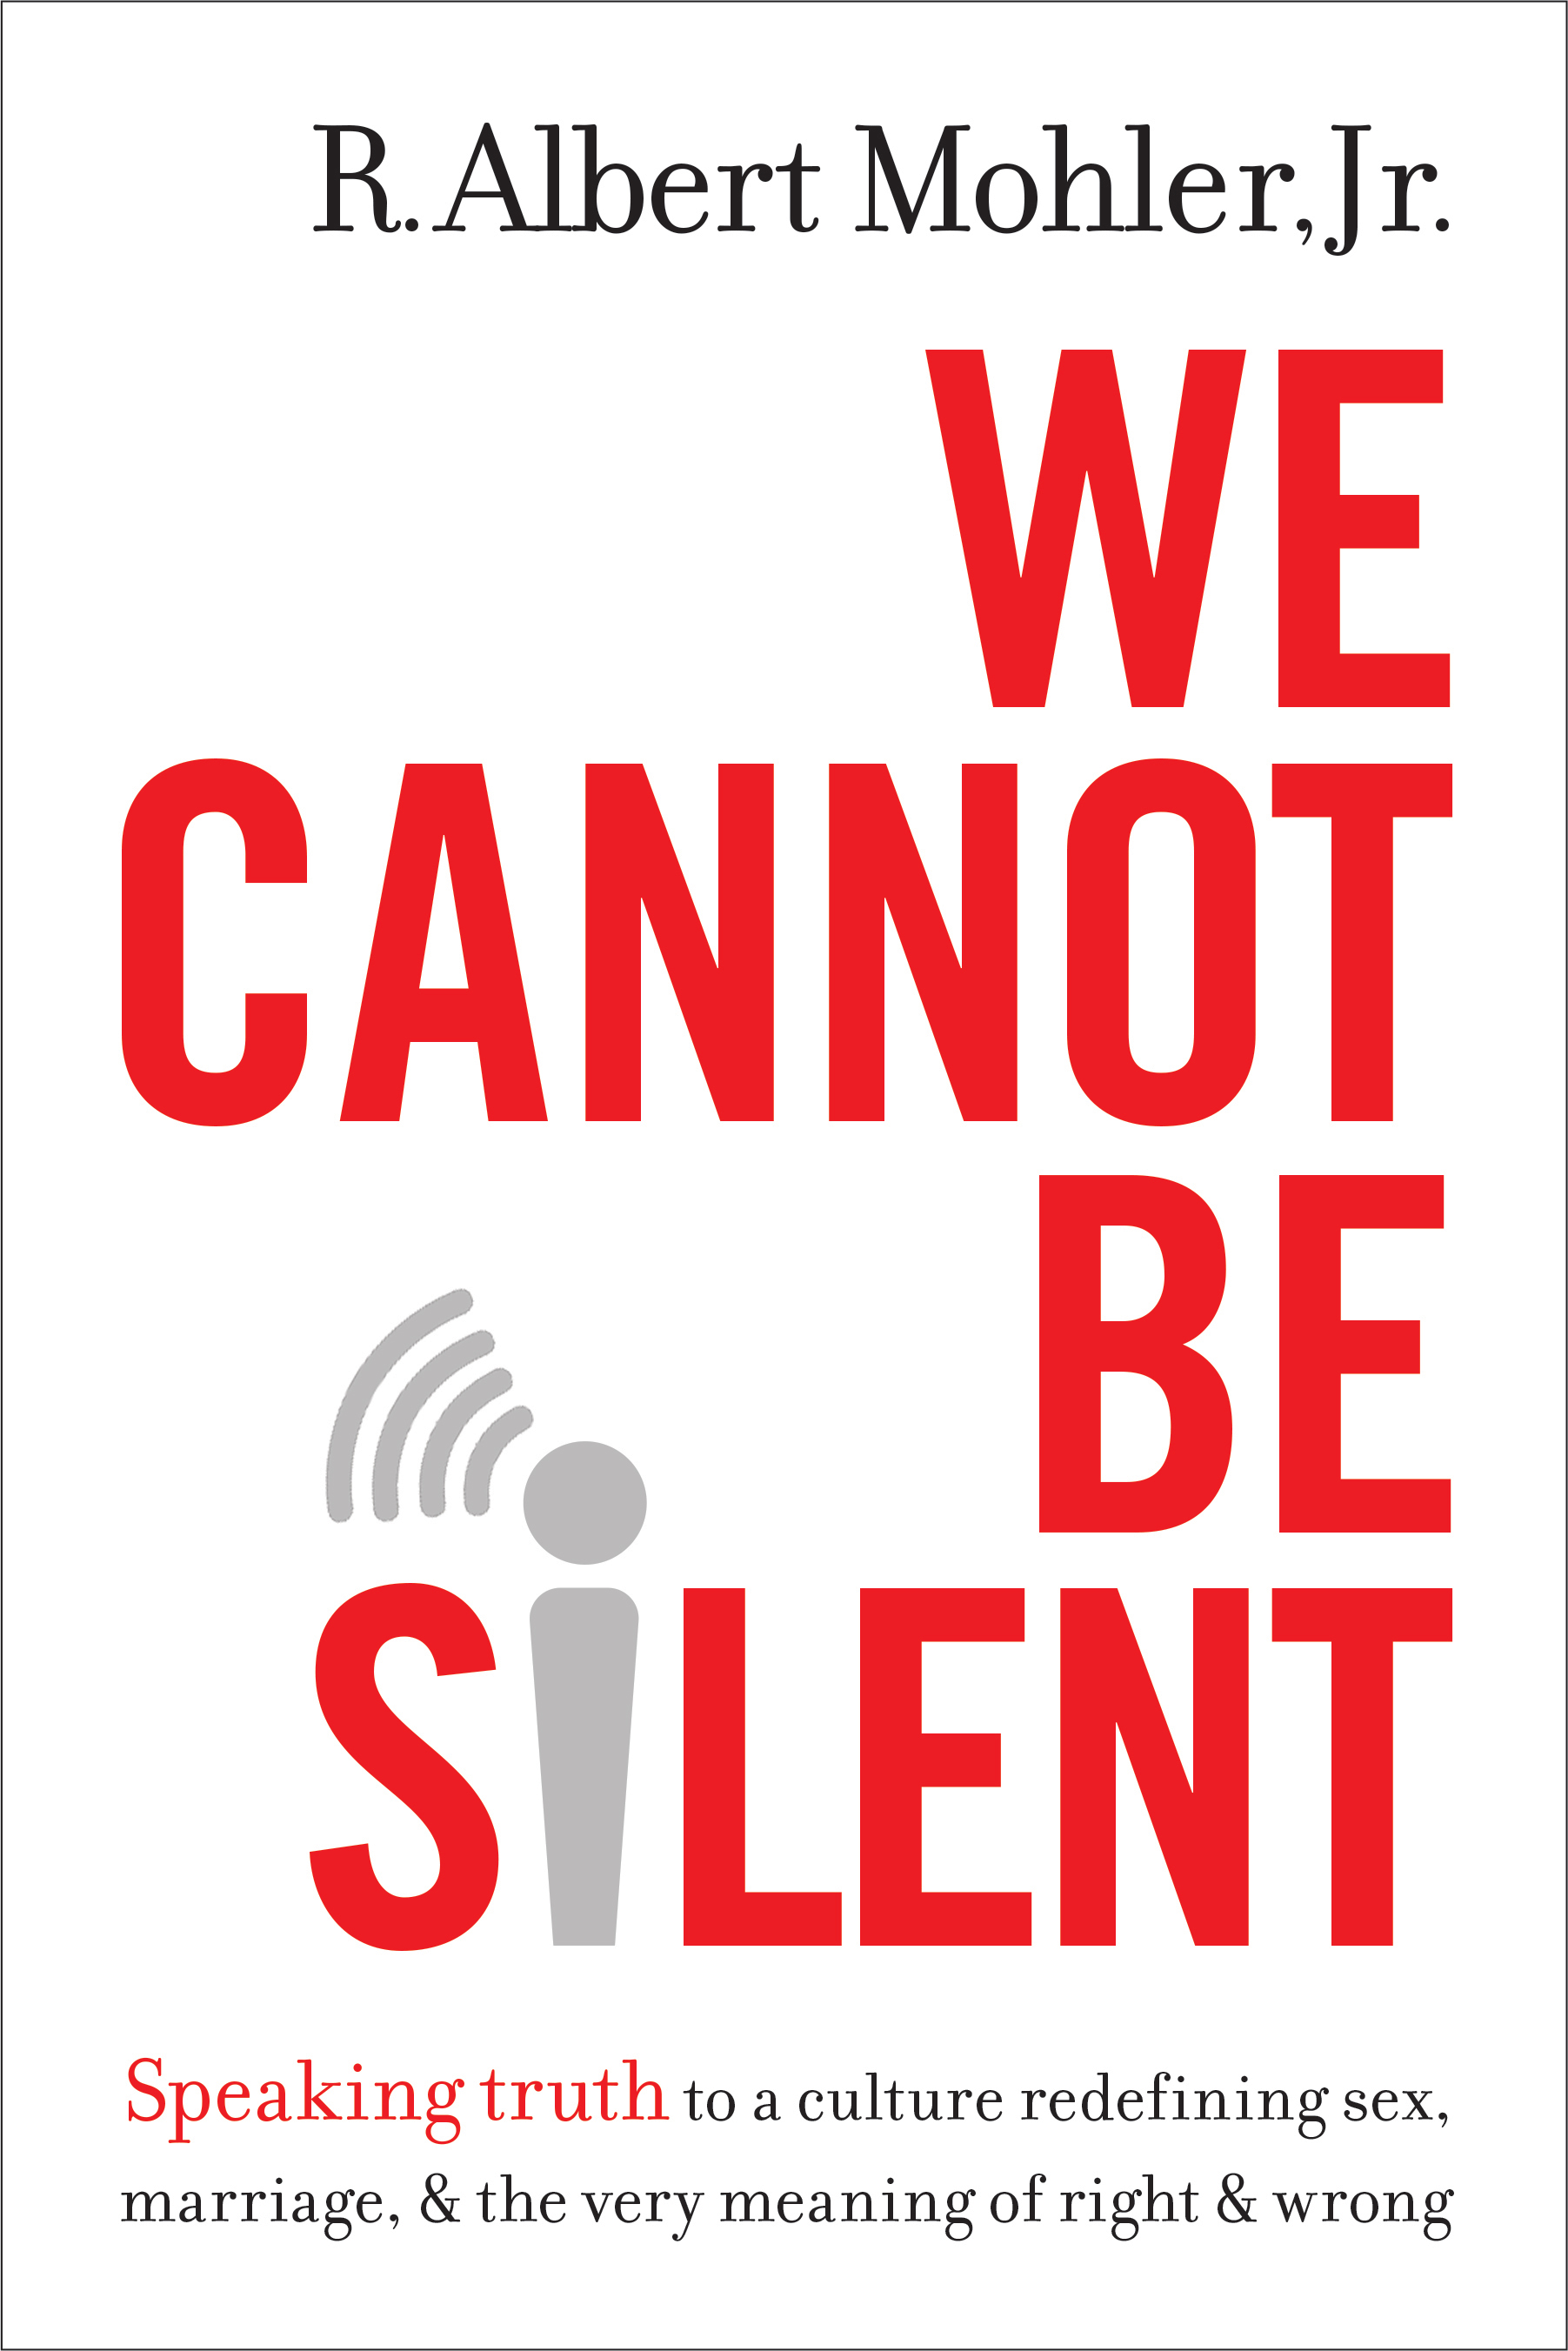 we-cannot-be-slient3